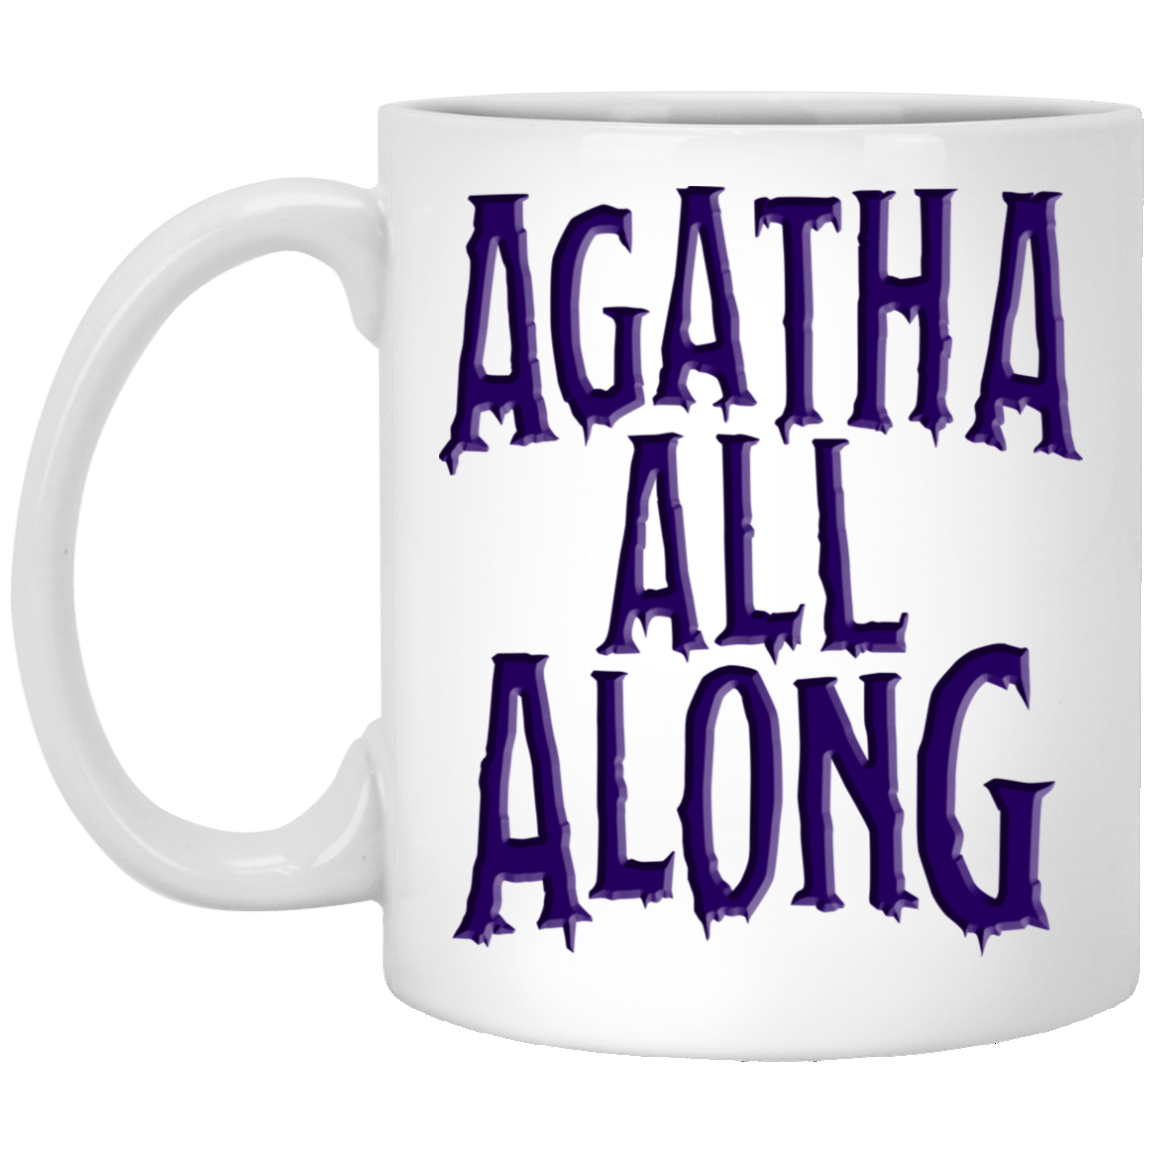 Agatha All Along Wandavision White Mug 1005-9786-92839335-47417 - Tee Ript